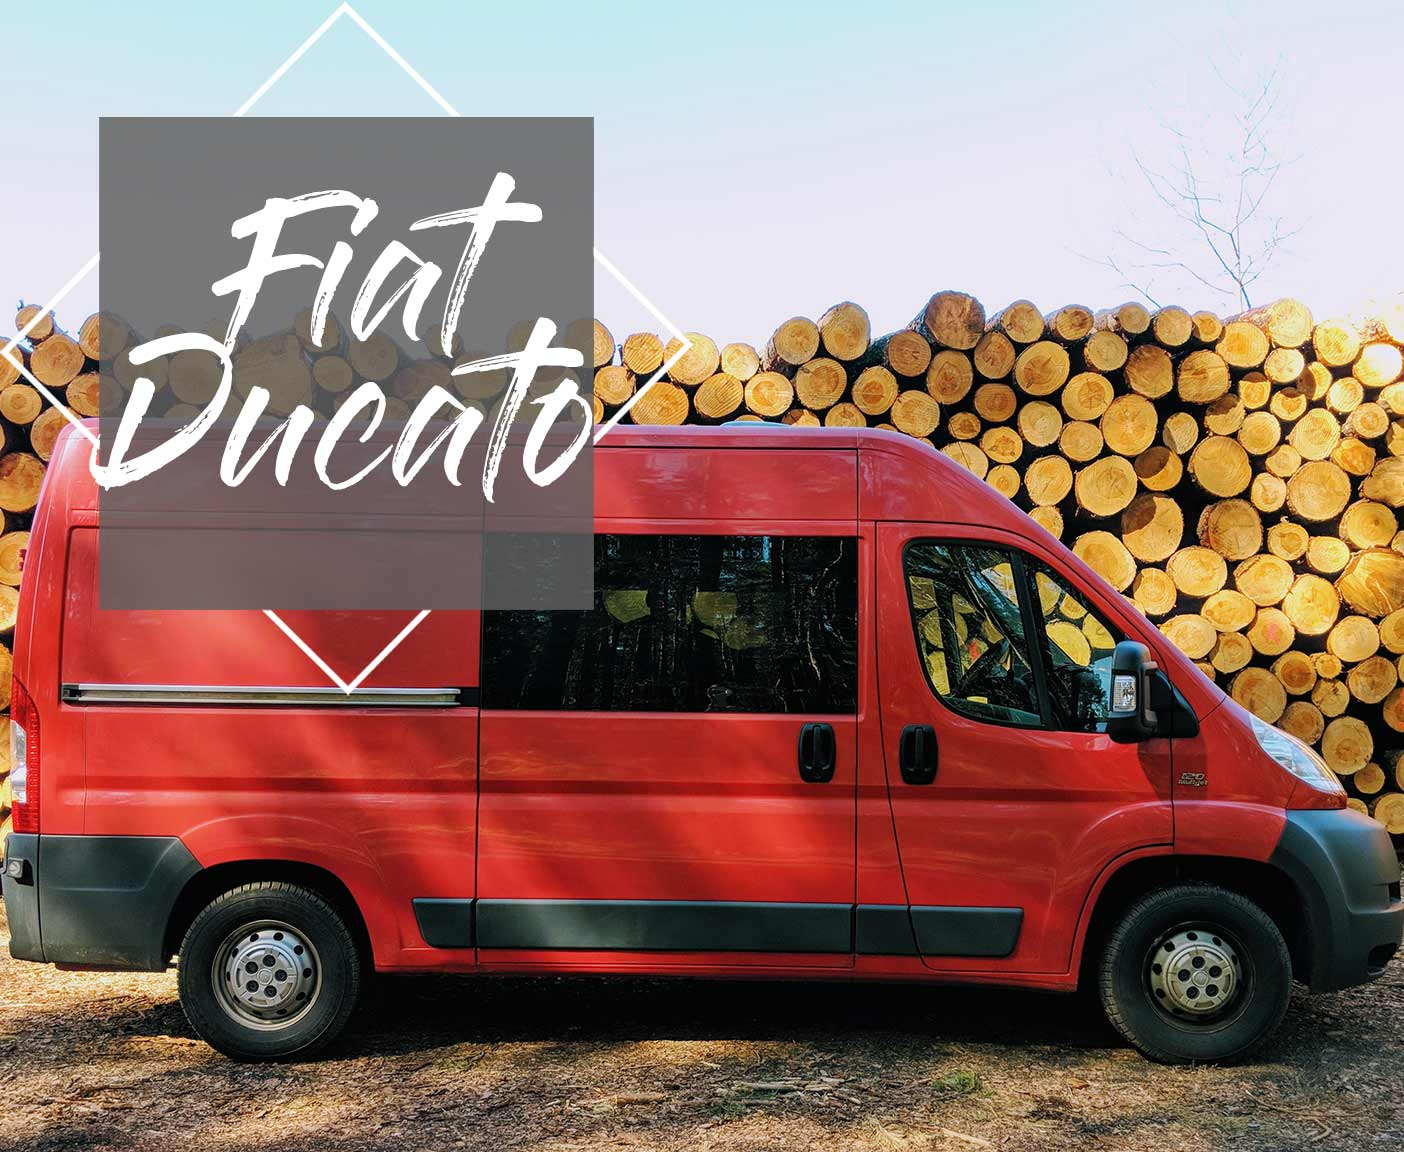 Fiat Ducato - From renting a van to buildinfg their own one